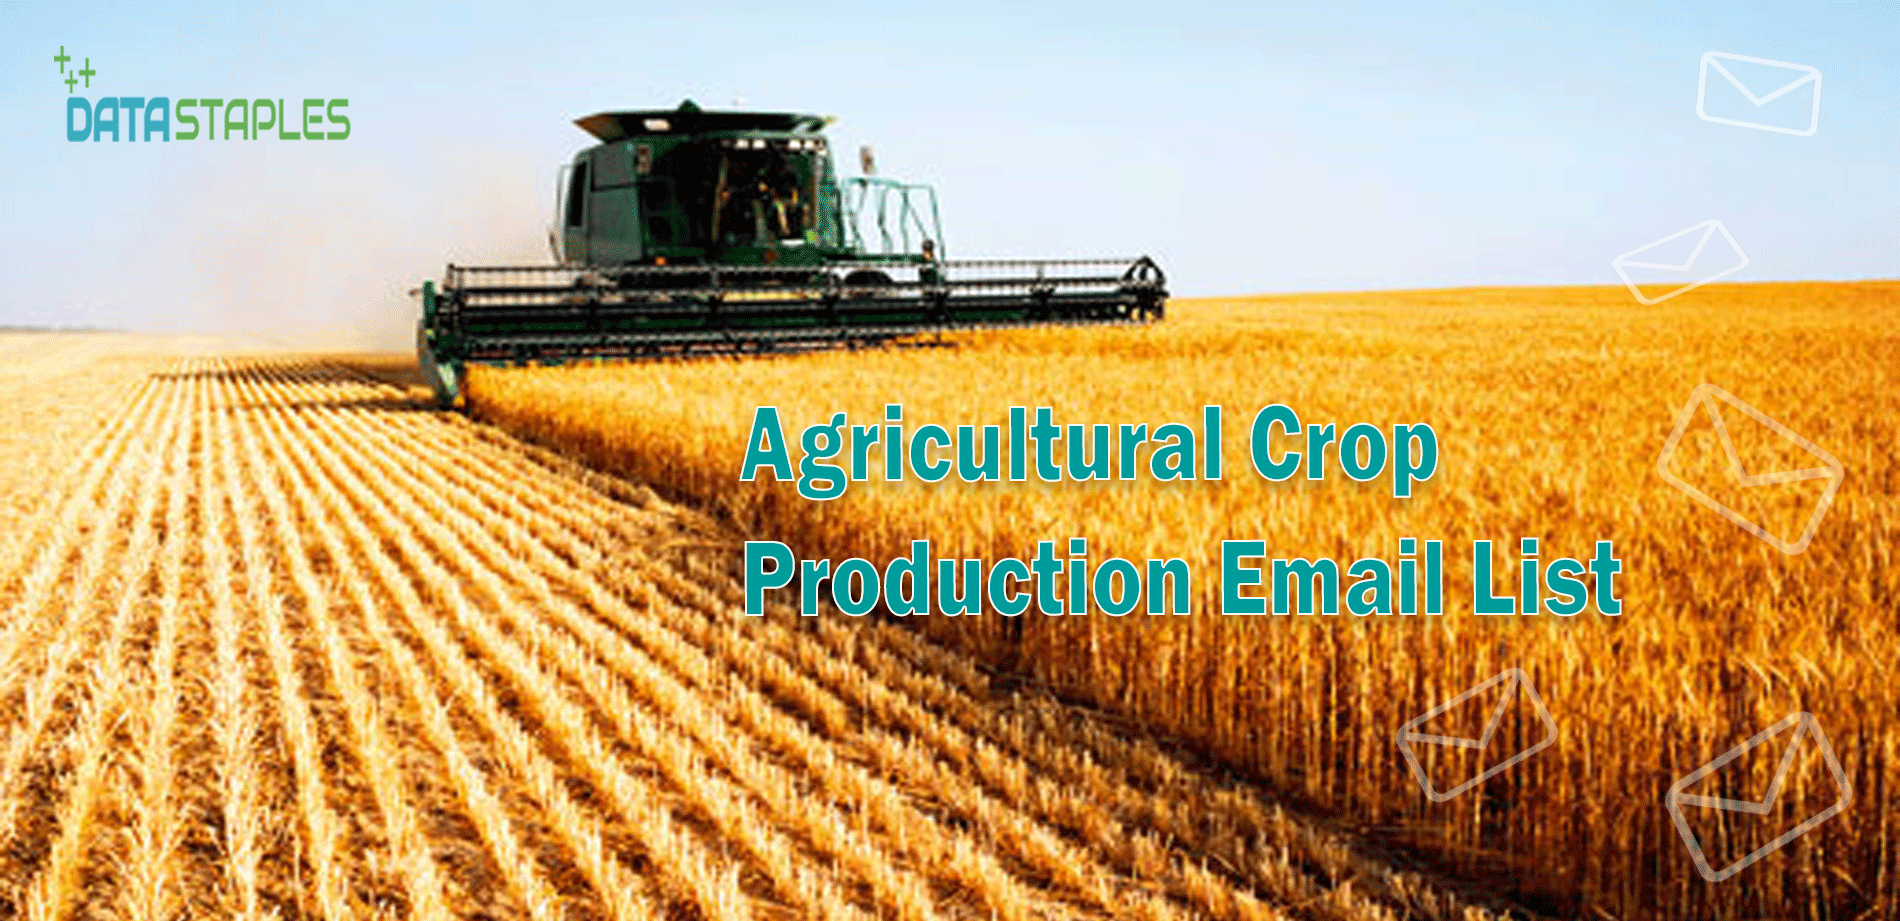 Agricultural Crop Production Email List   DataStaples